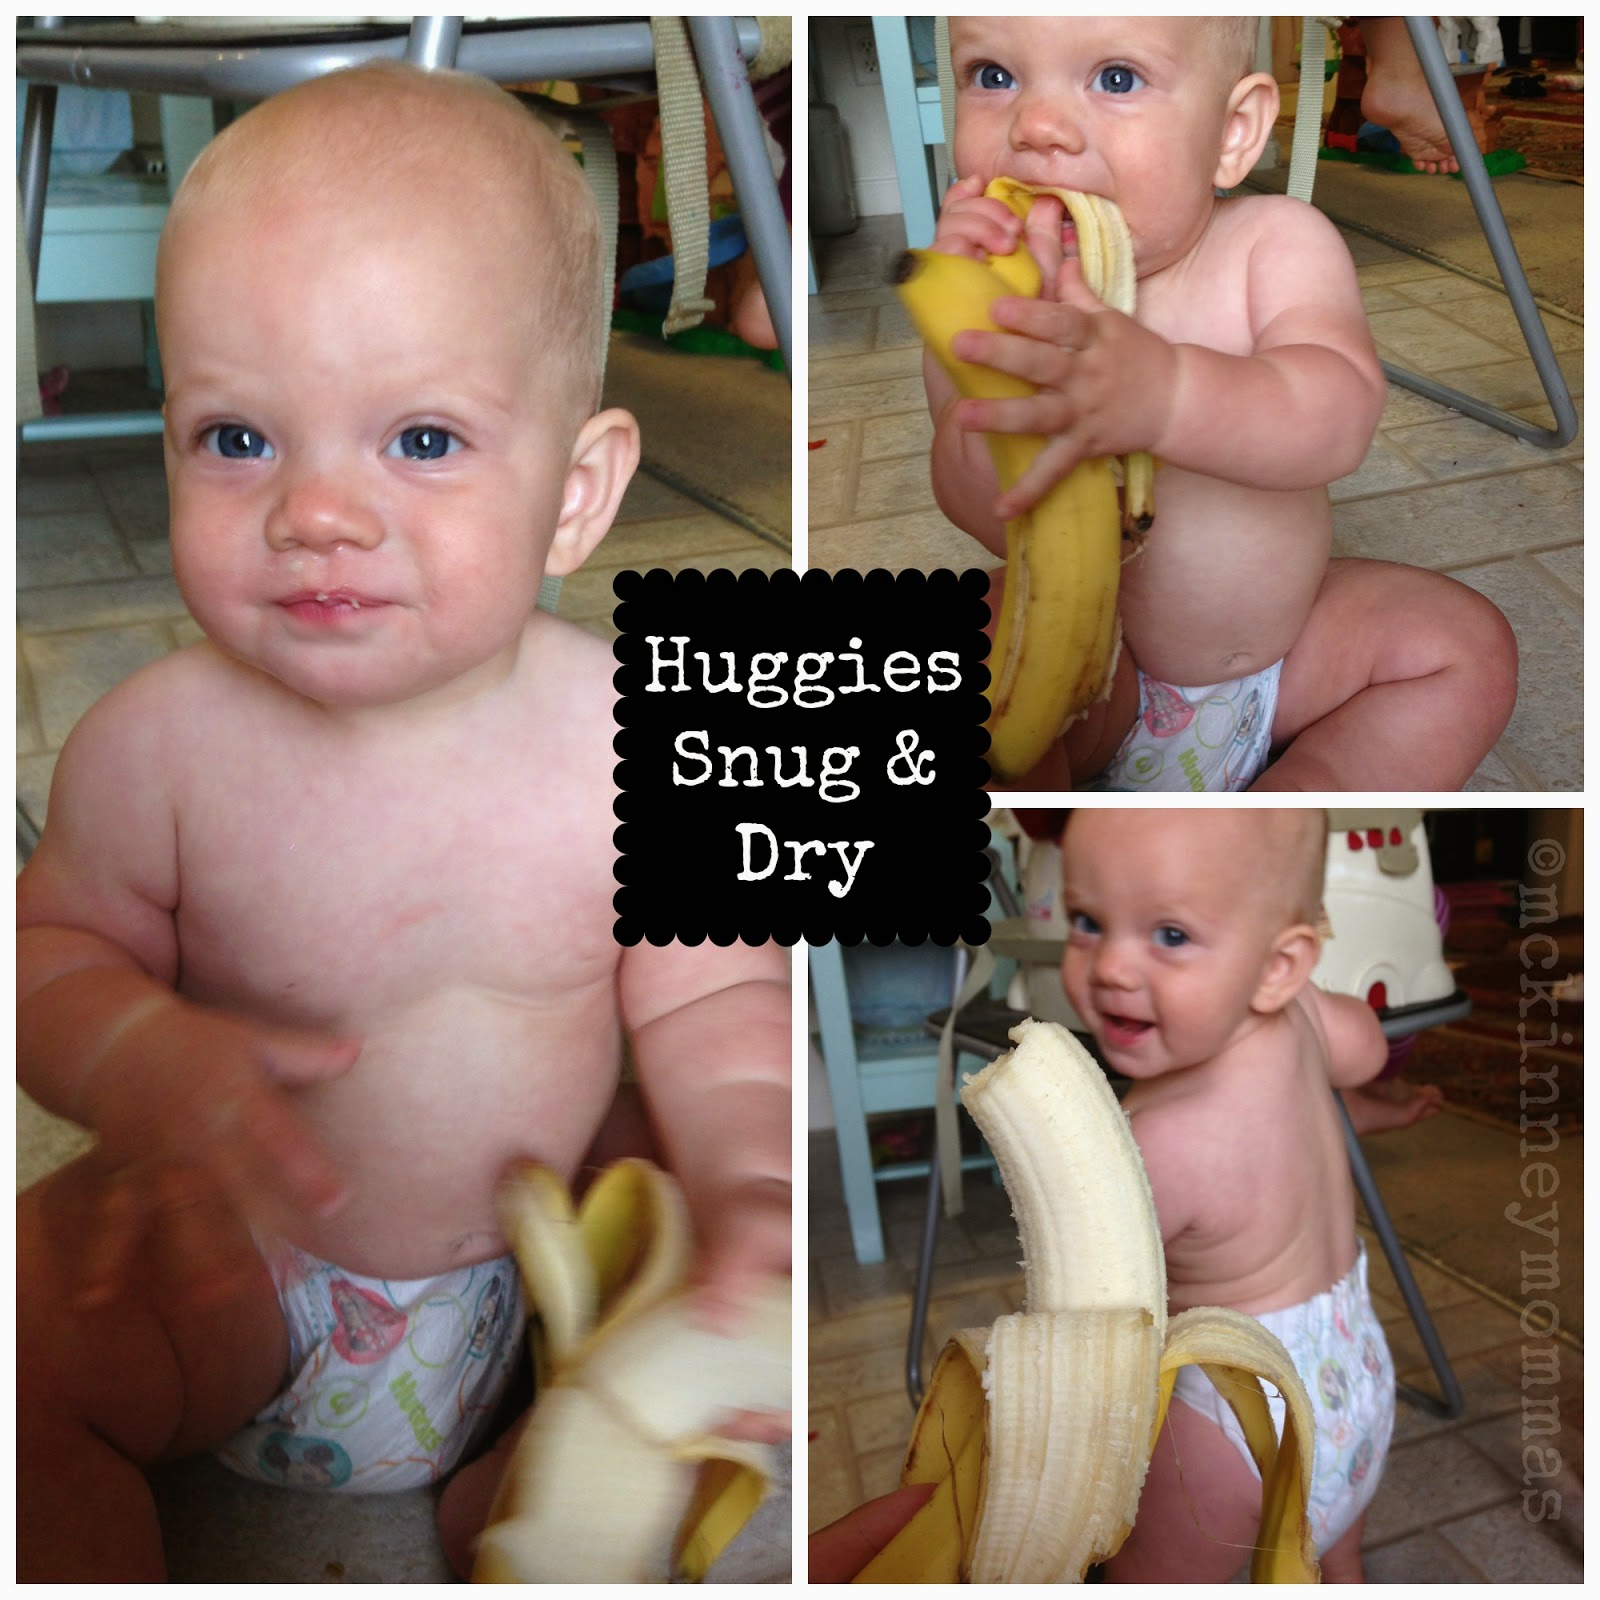 huggies diapers, snug & dry, natural care wipes, baby holding banana